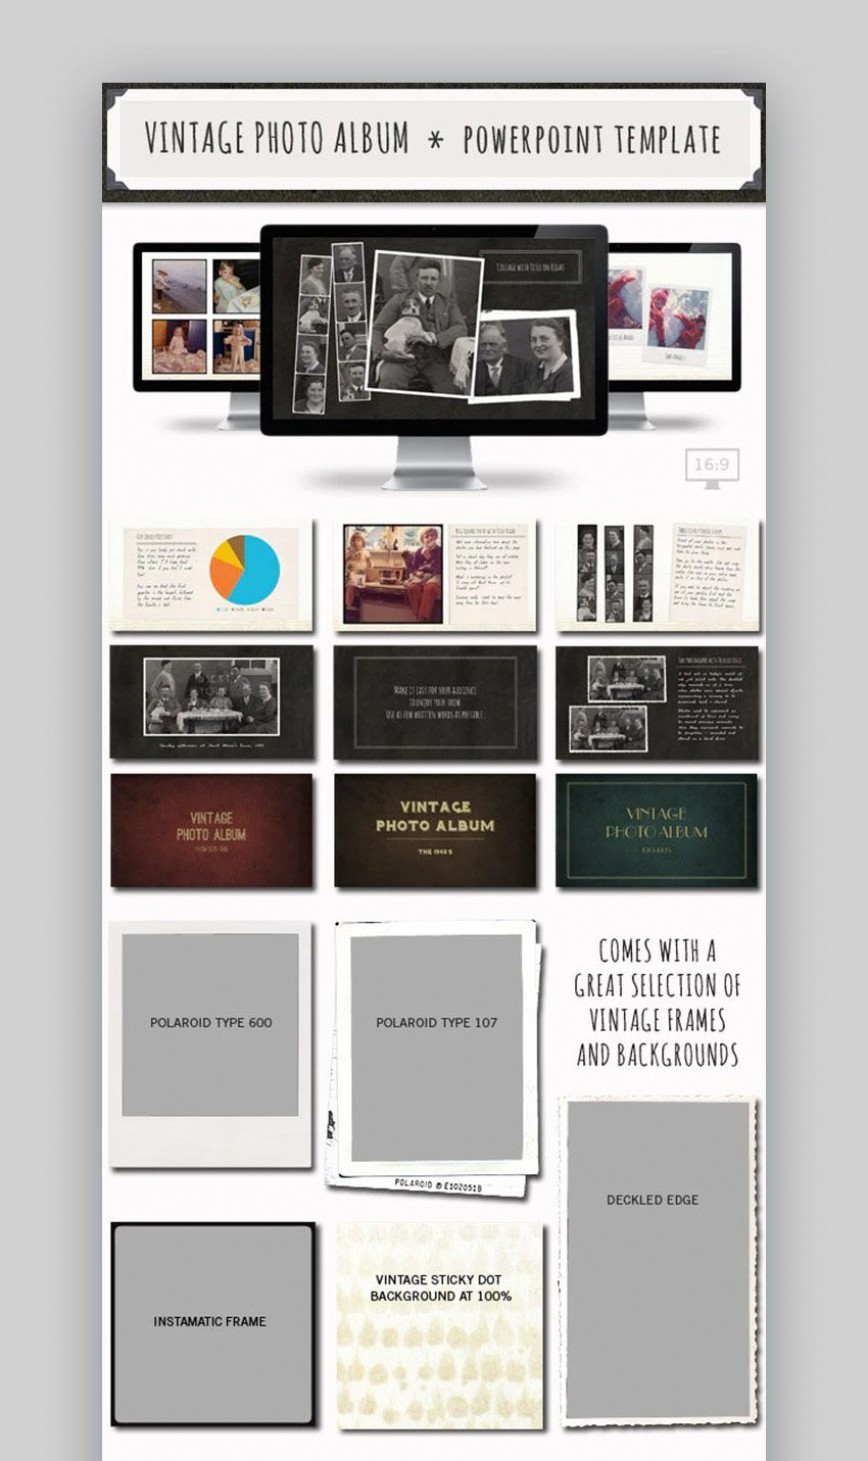 000 Astounding In Loving Memory Powerpoint Template Free Download Sample